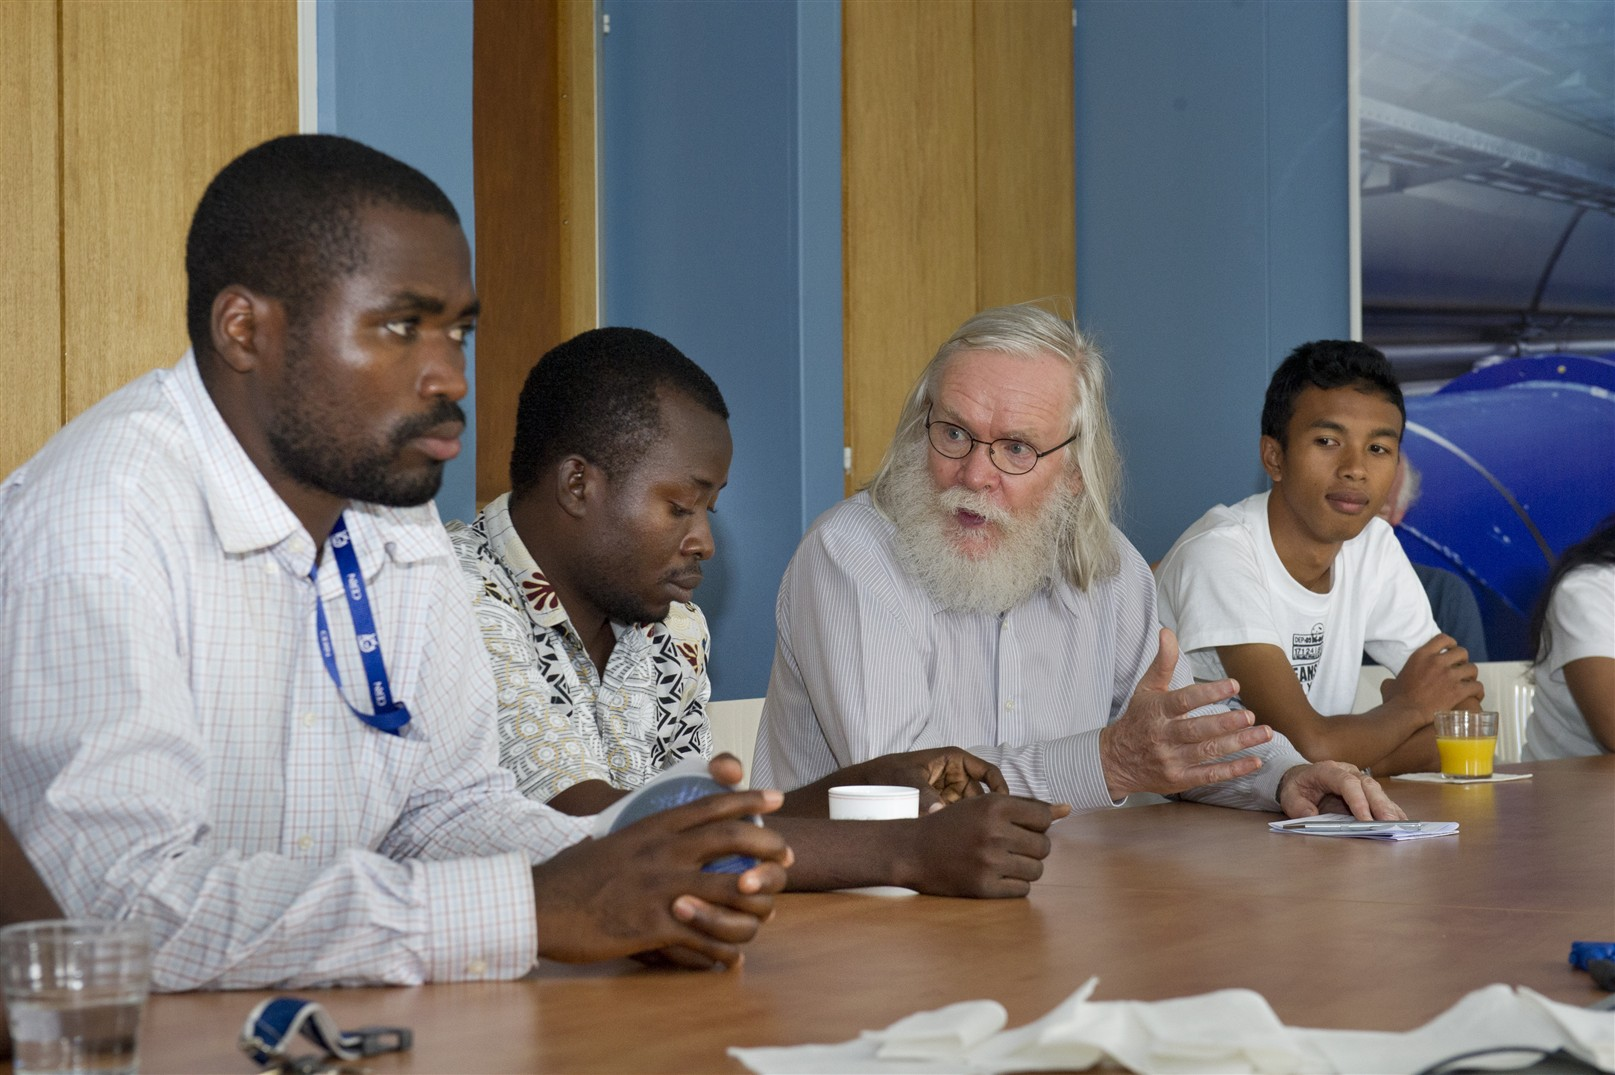 Meeting between African Summer Students & High-School Teachers and Prof. Rolf Heuer, CERN Director General